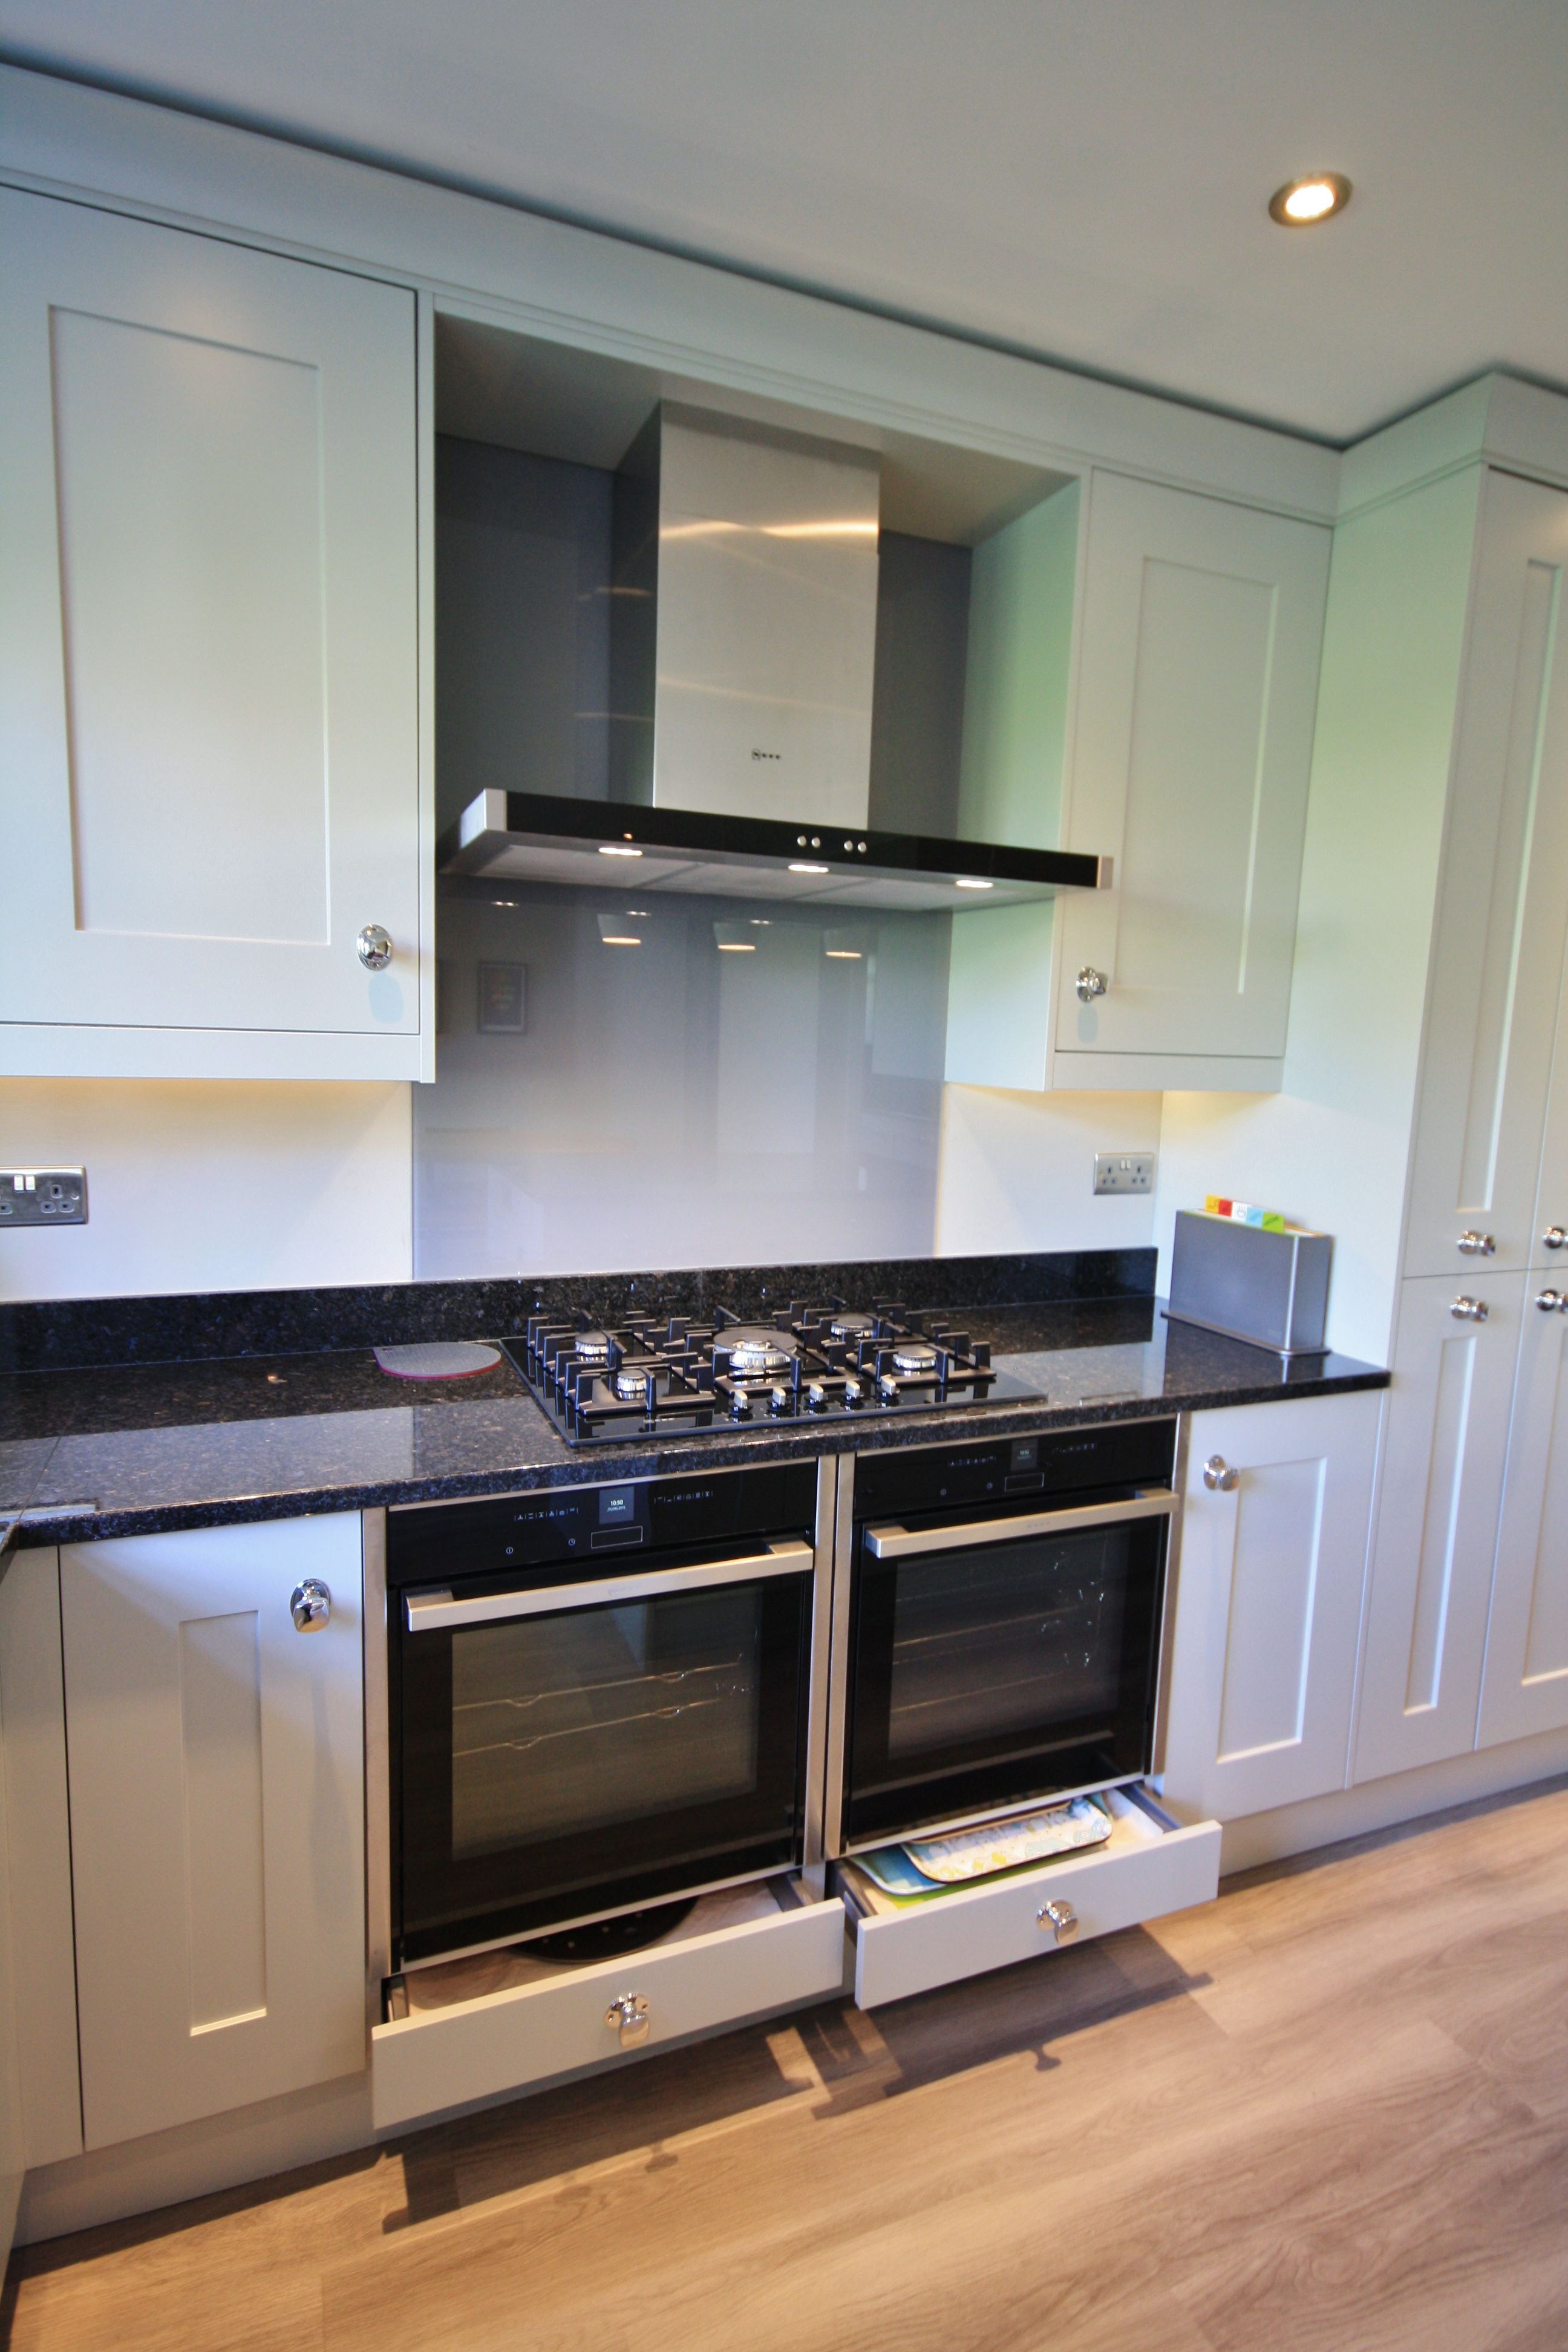 2 Neff Slide Hide Pyrolytic Ovens And Neff Extractor Hood With Storage Drawers Below And A Slate Grey Glass Spl Kitchen Cooker Kitchen Interior Kitchen Design